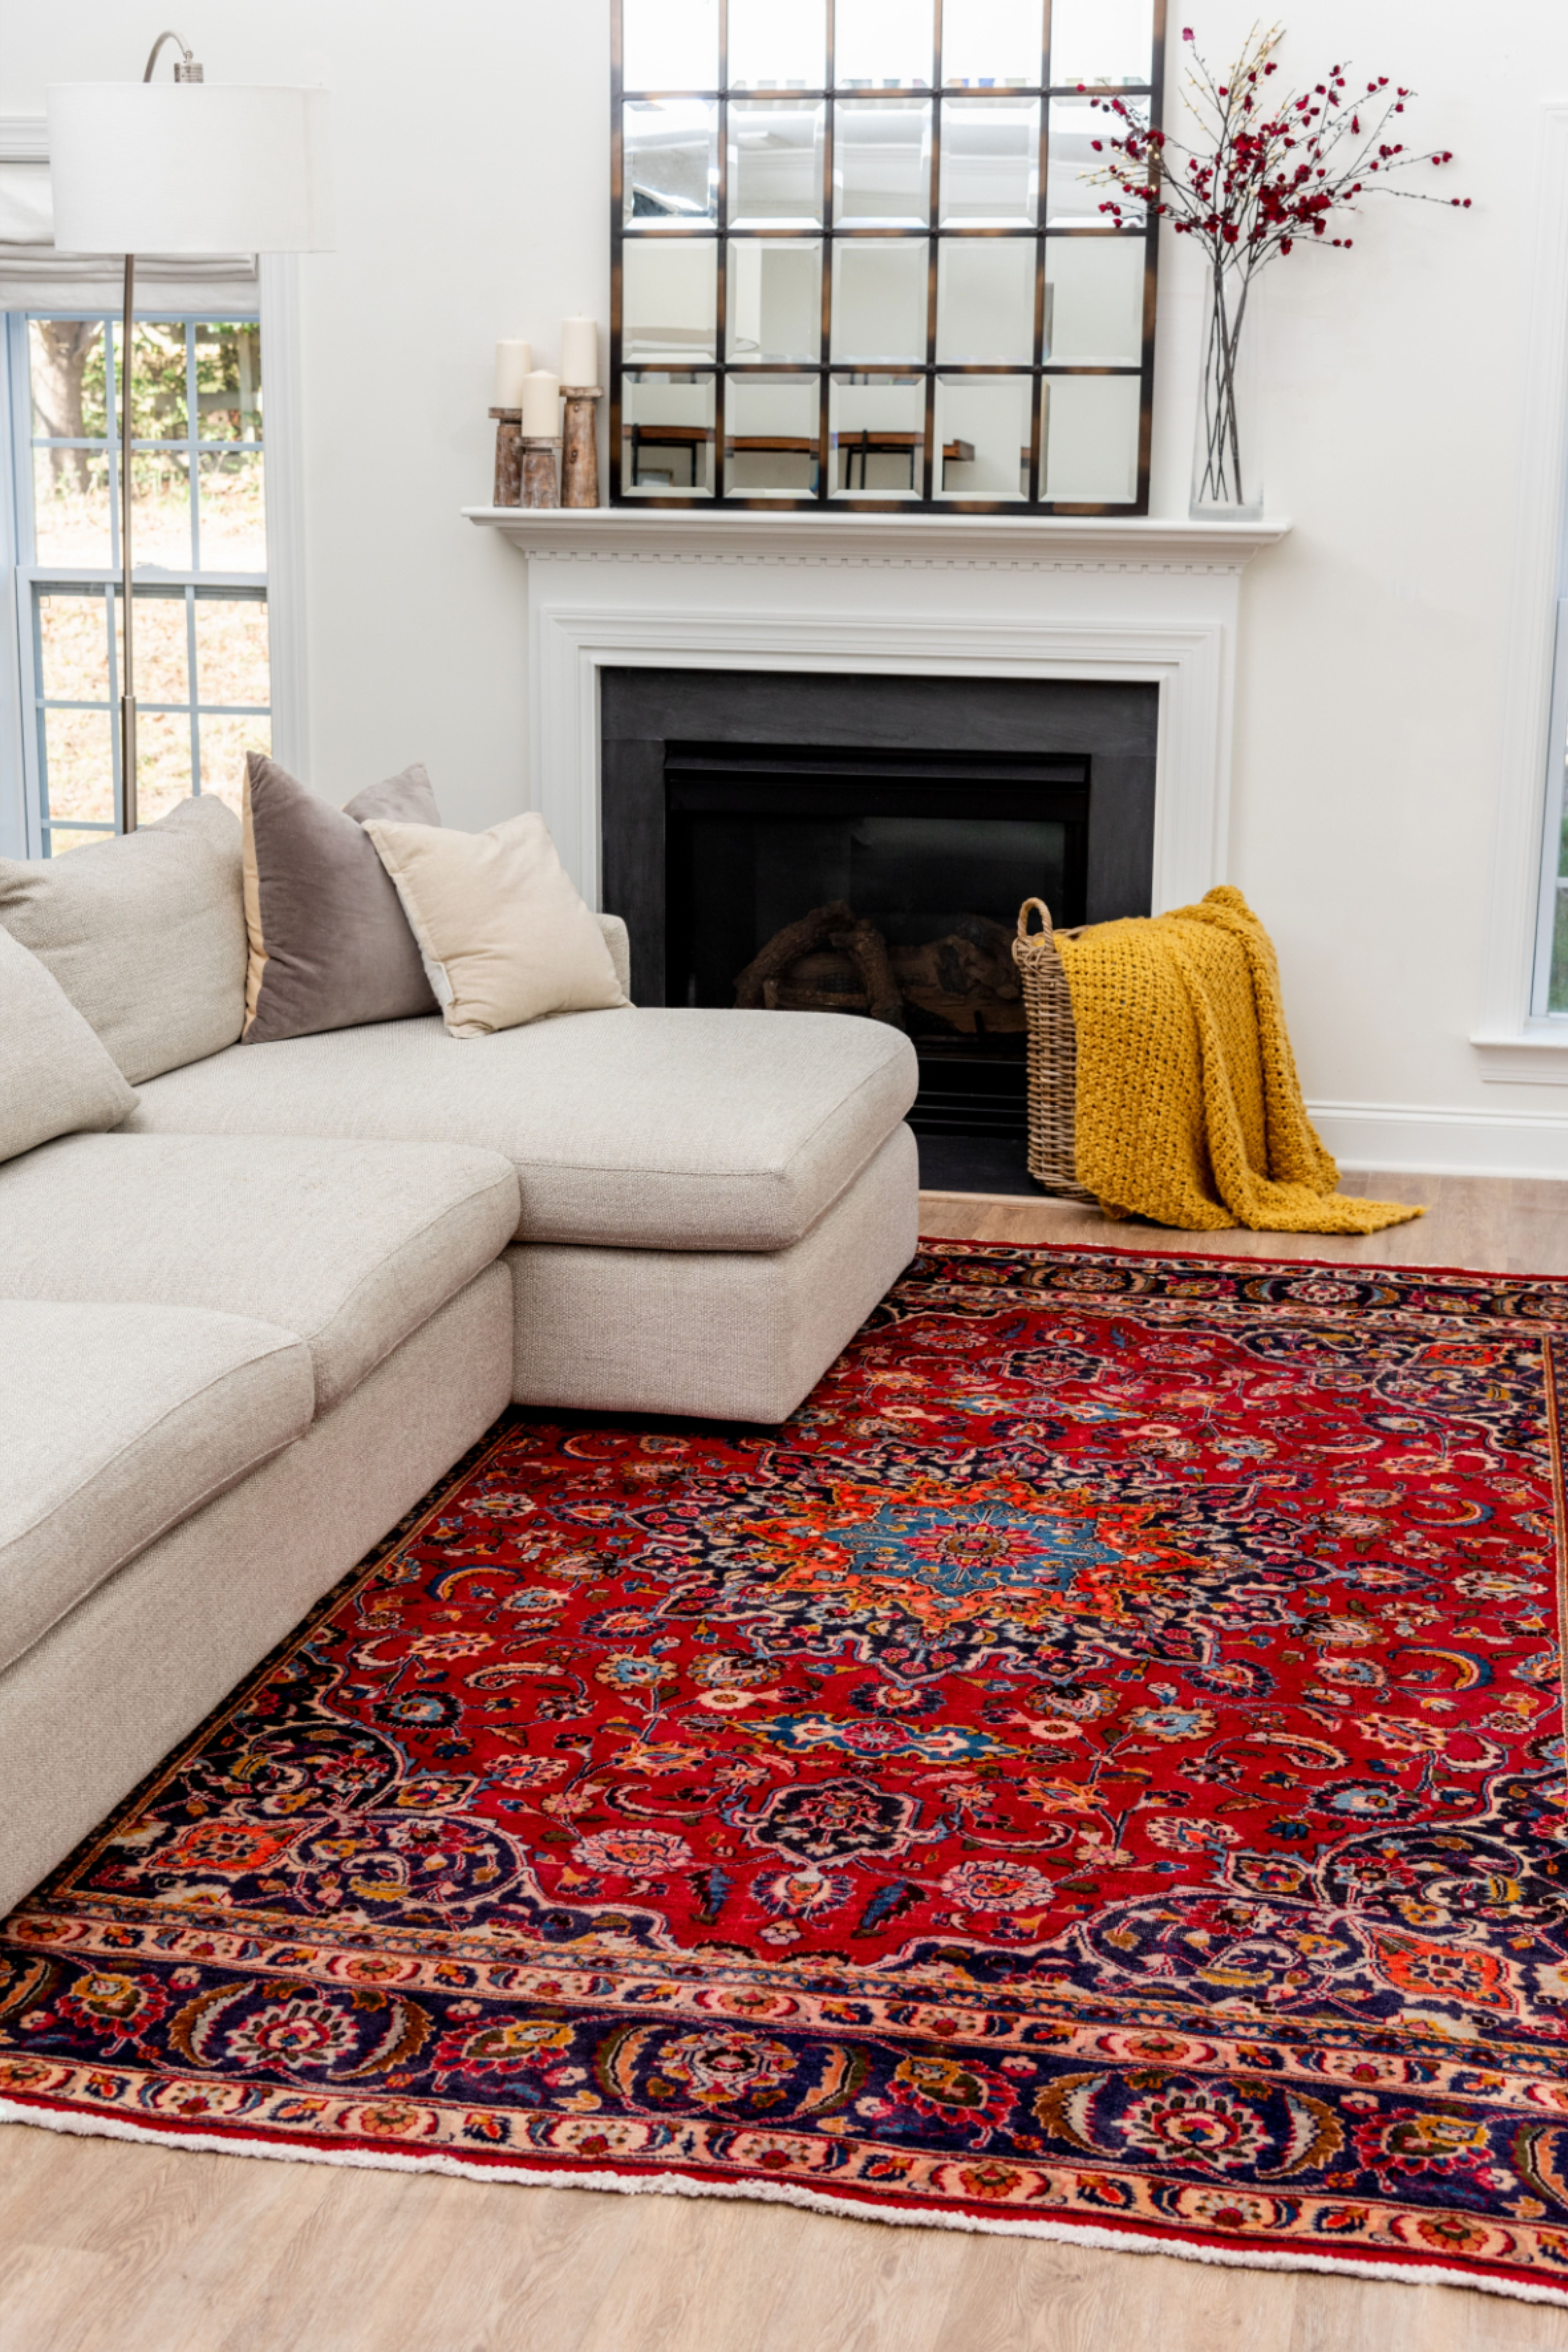 Cozy Up In Your Living Room With Our Mashad Persian Rug Cozy Livingroomdecor In 2020 Persian Carpet Living Room Persian Rug Living Room Red Persian Rug Living Room #red #persian #rug #living #room